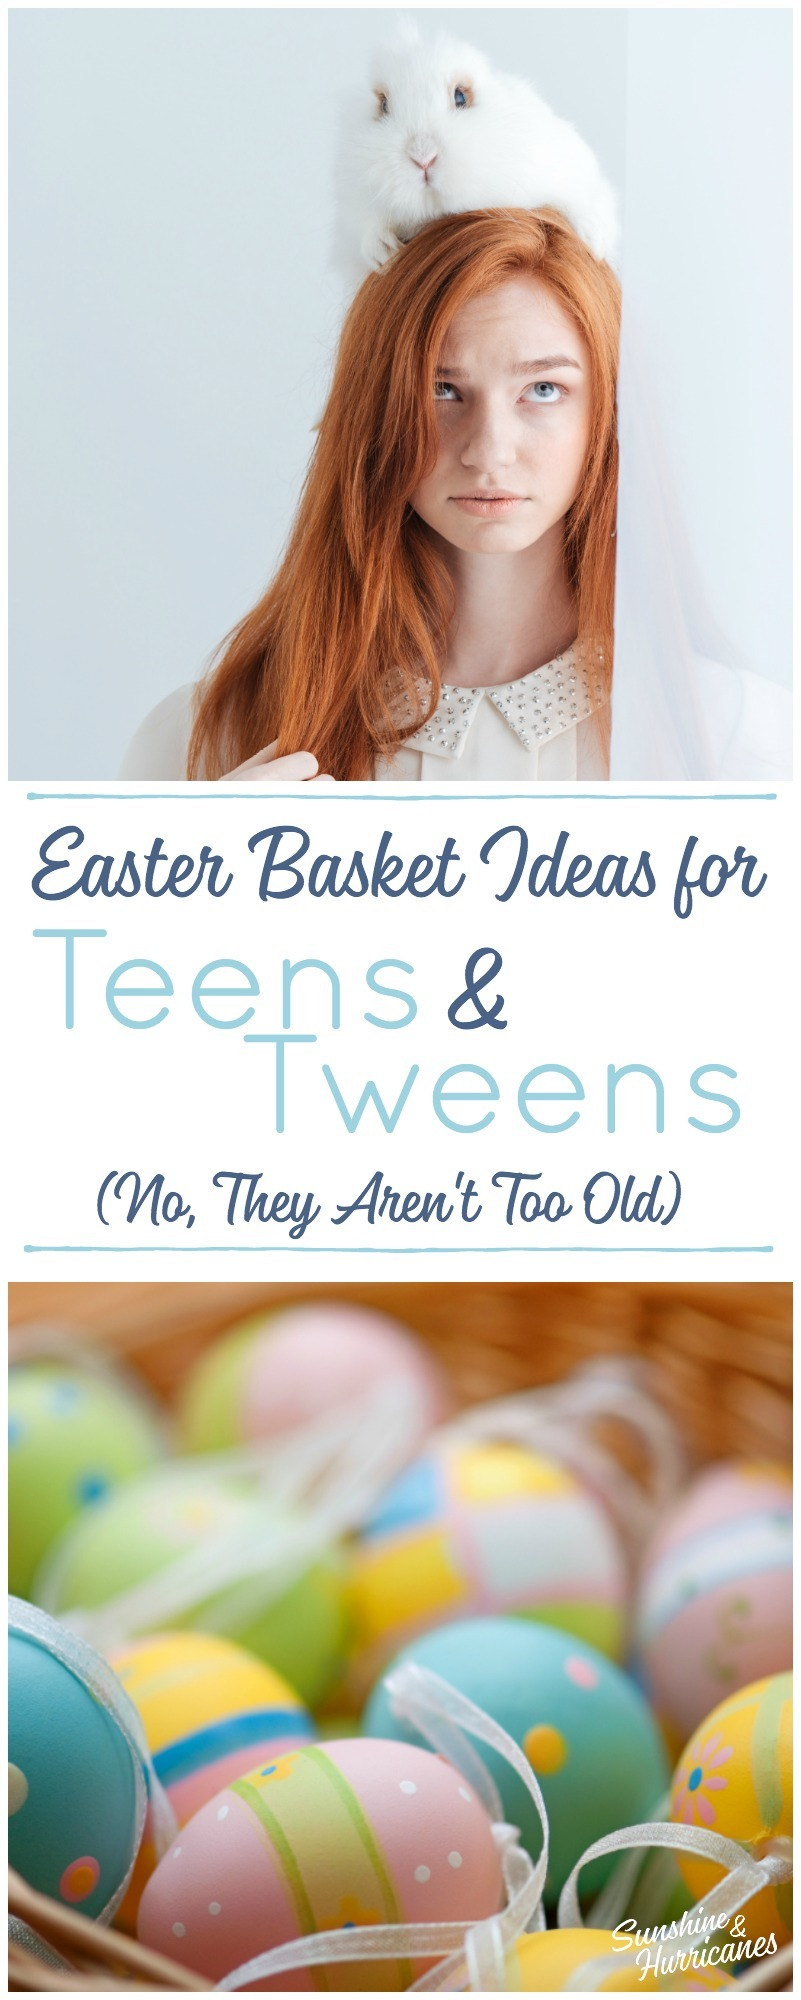 No they aren't too old. Creative, Clever and Cute Easter Basket Ideas for Your Tweens and Teens.